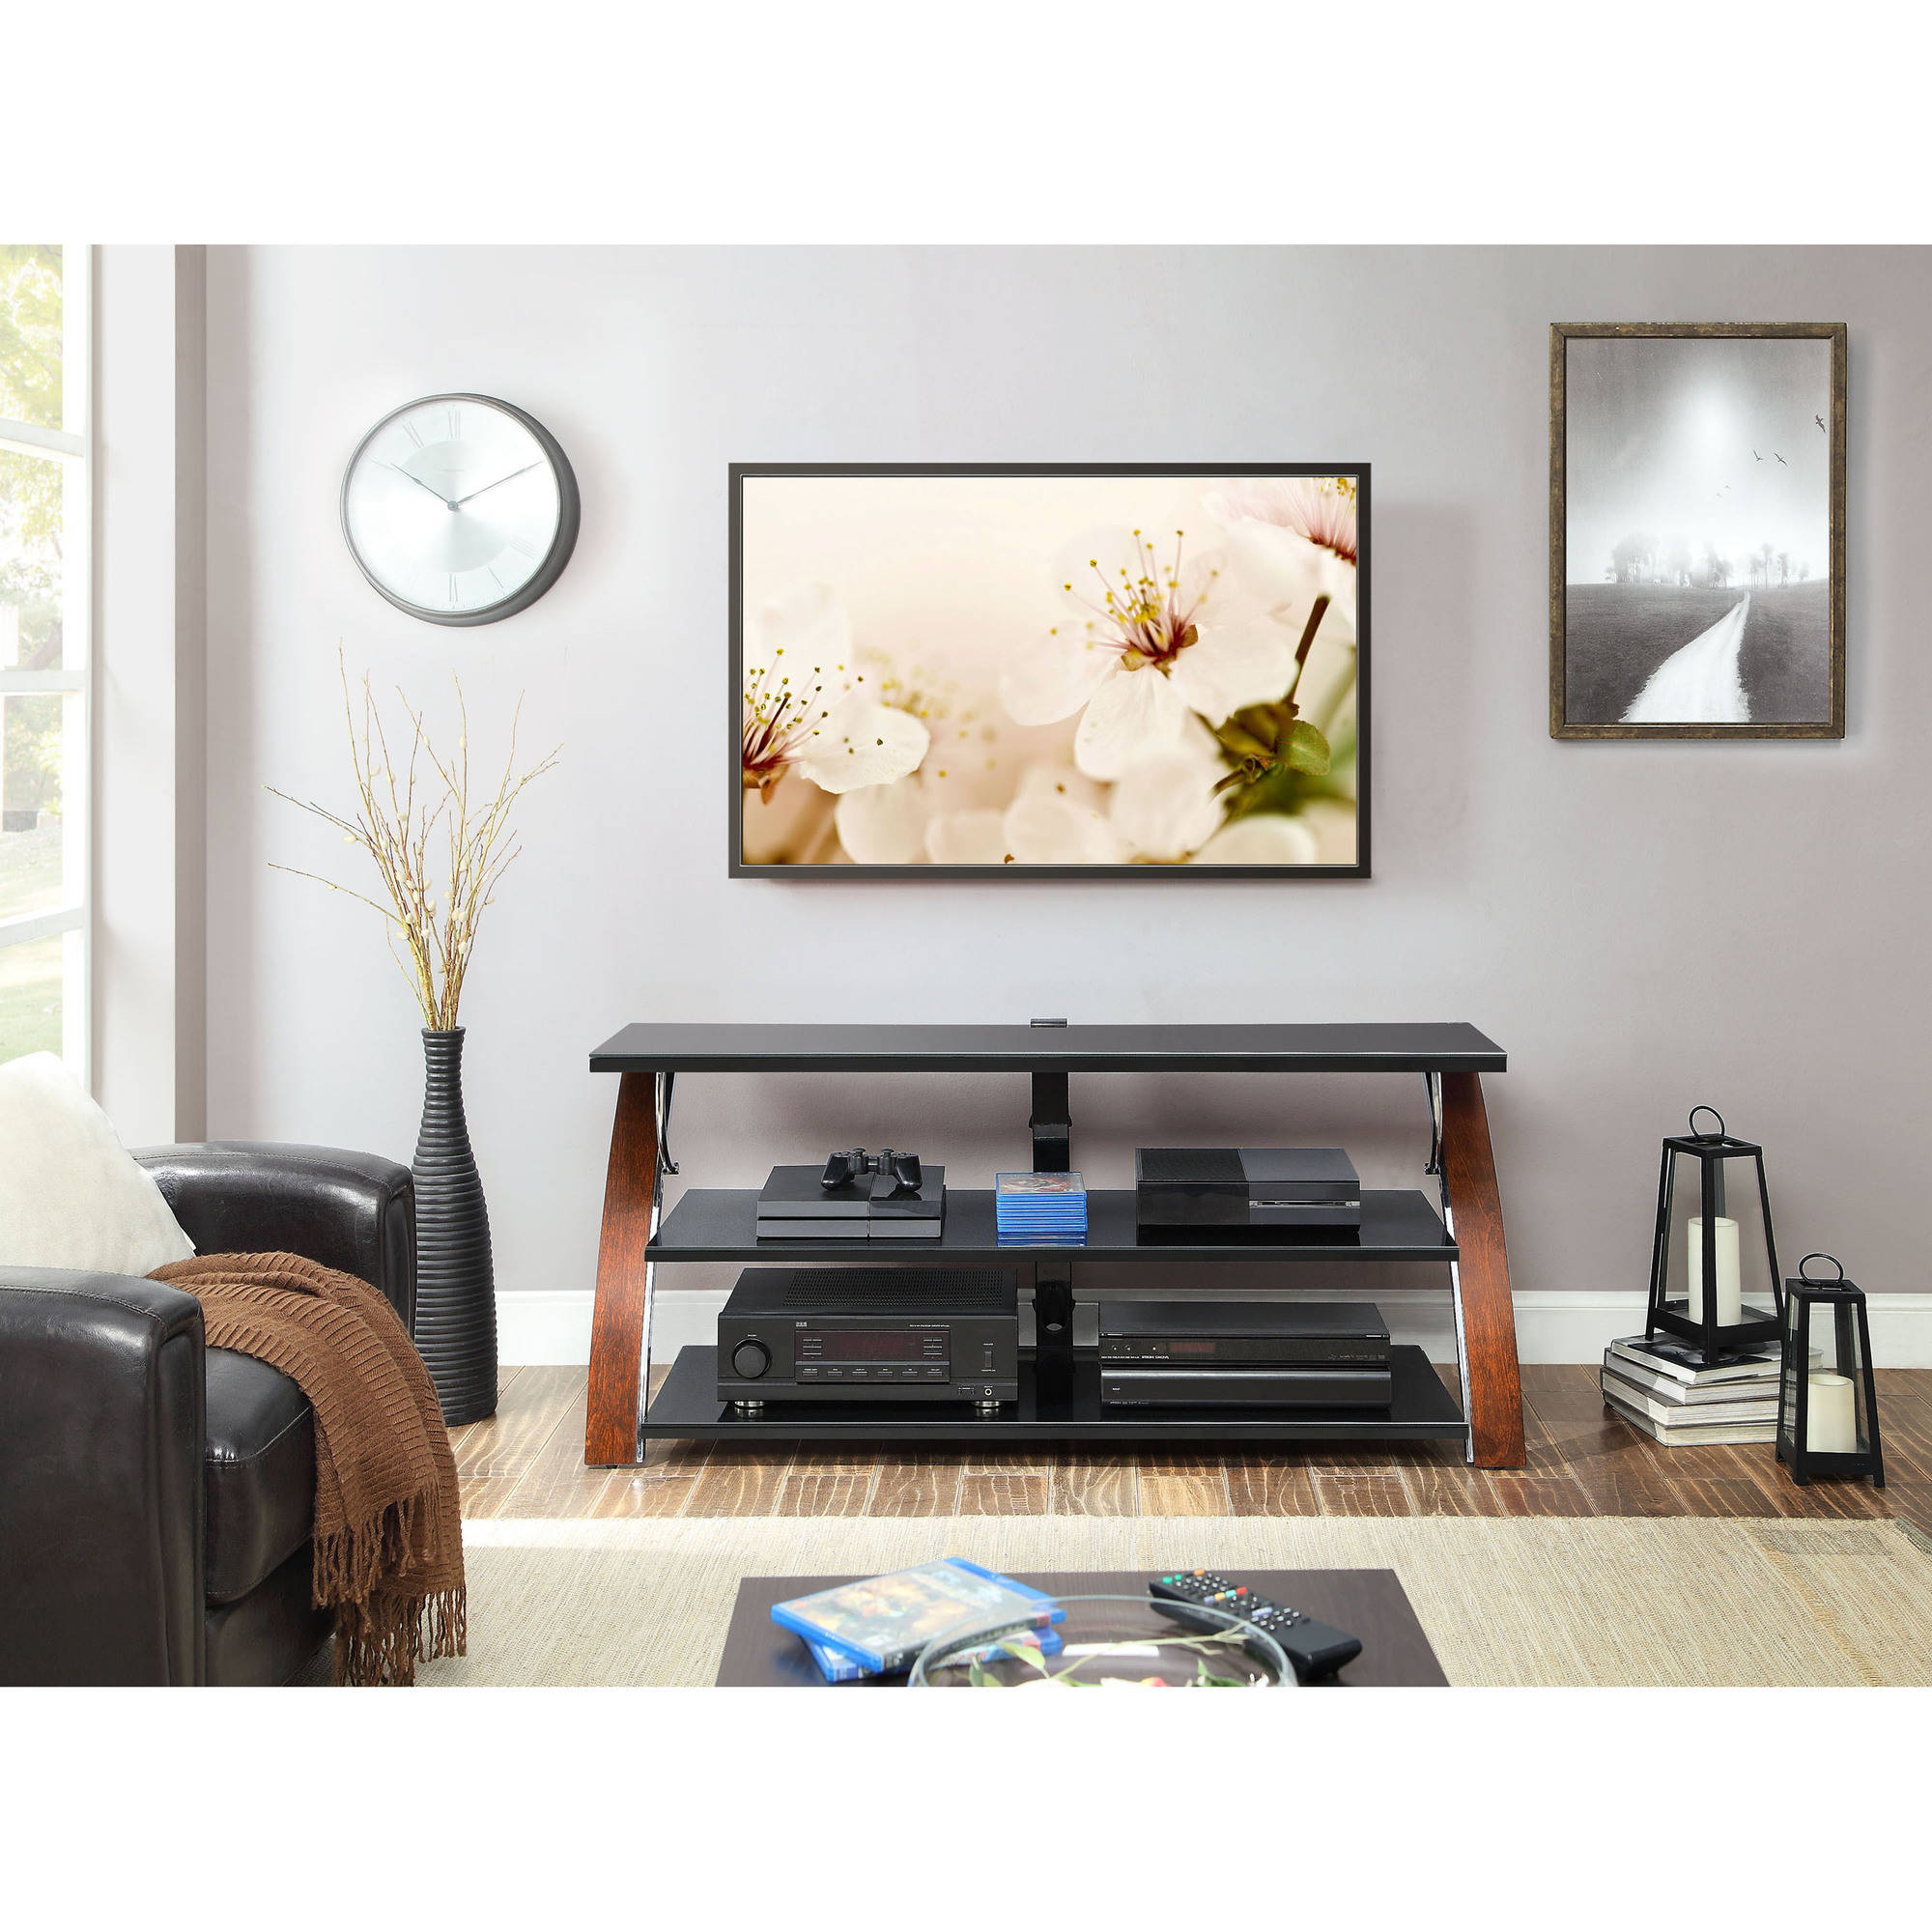 Whalen Payton Brown Cherry 3 In 1 Flat Panel Tv Stand For Tvs Up To Within Jaxon 71 Inch Tv Stands (View 20 of 20)